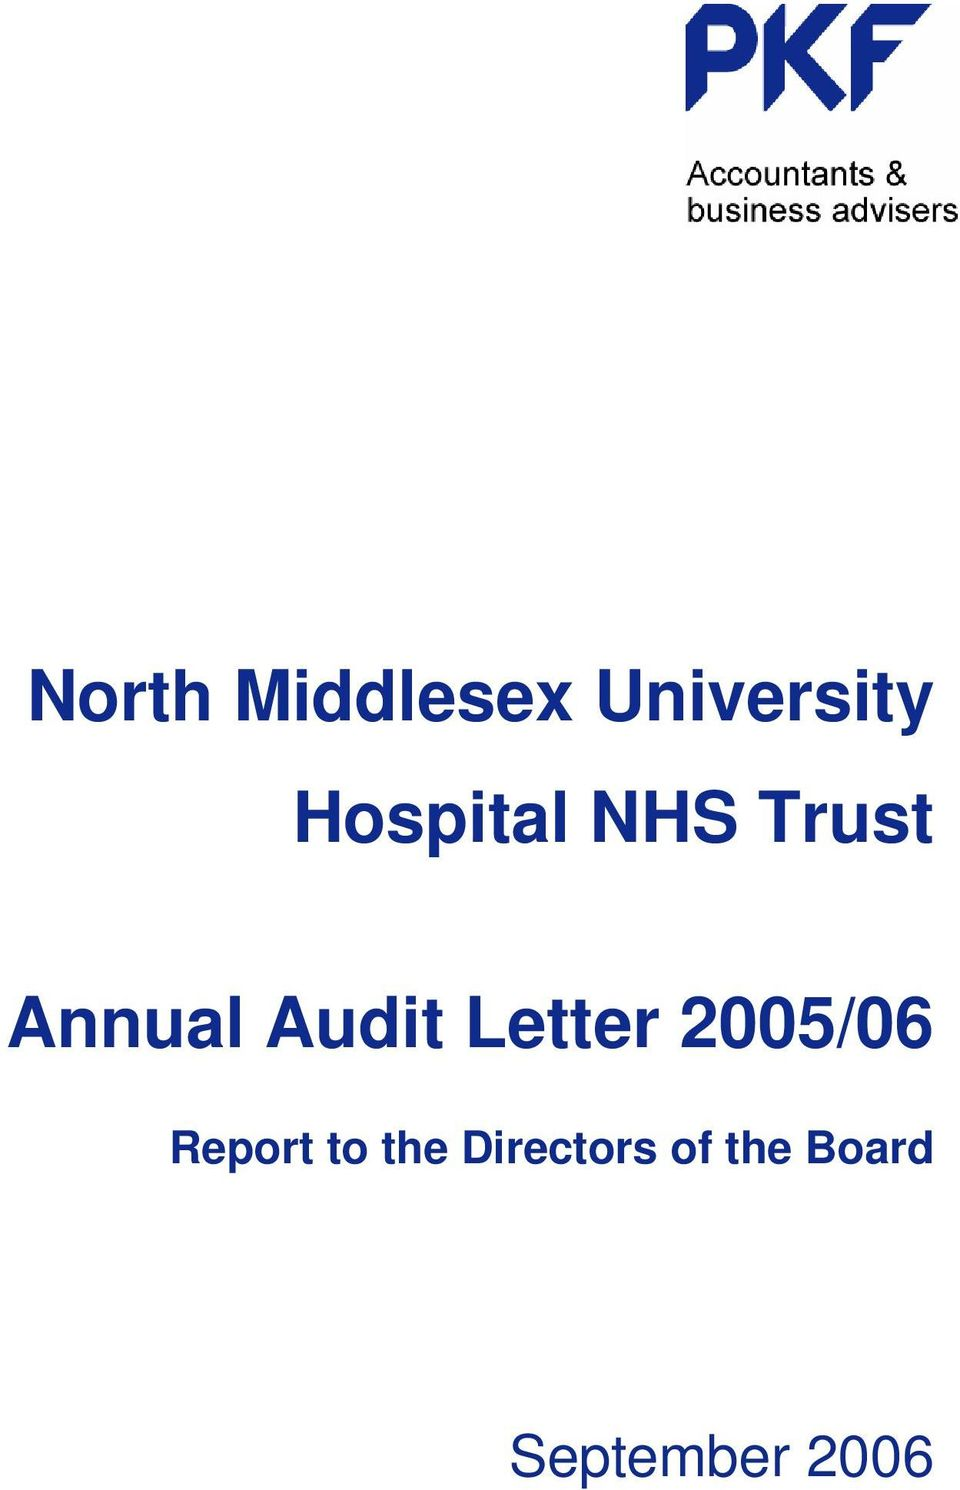 Audit Letter 2005/06 Report